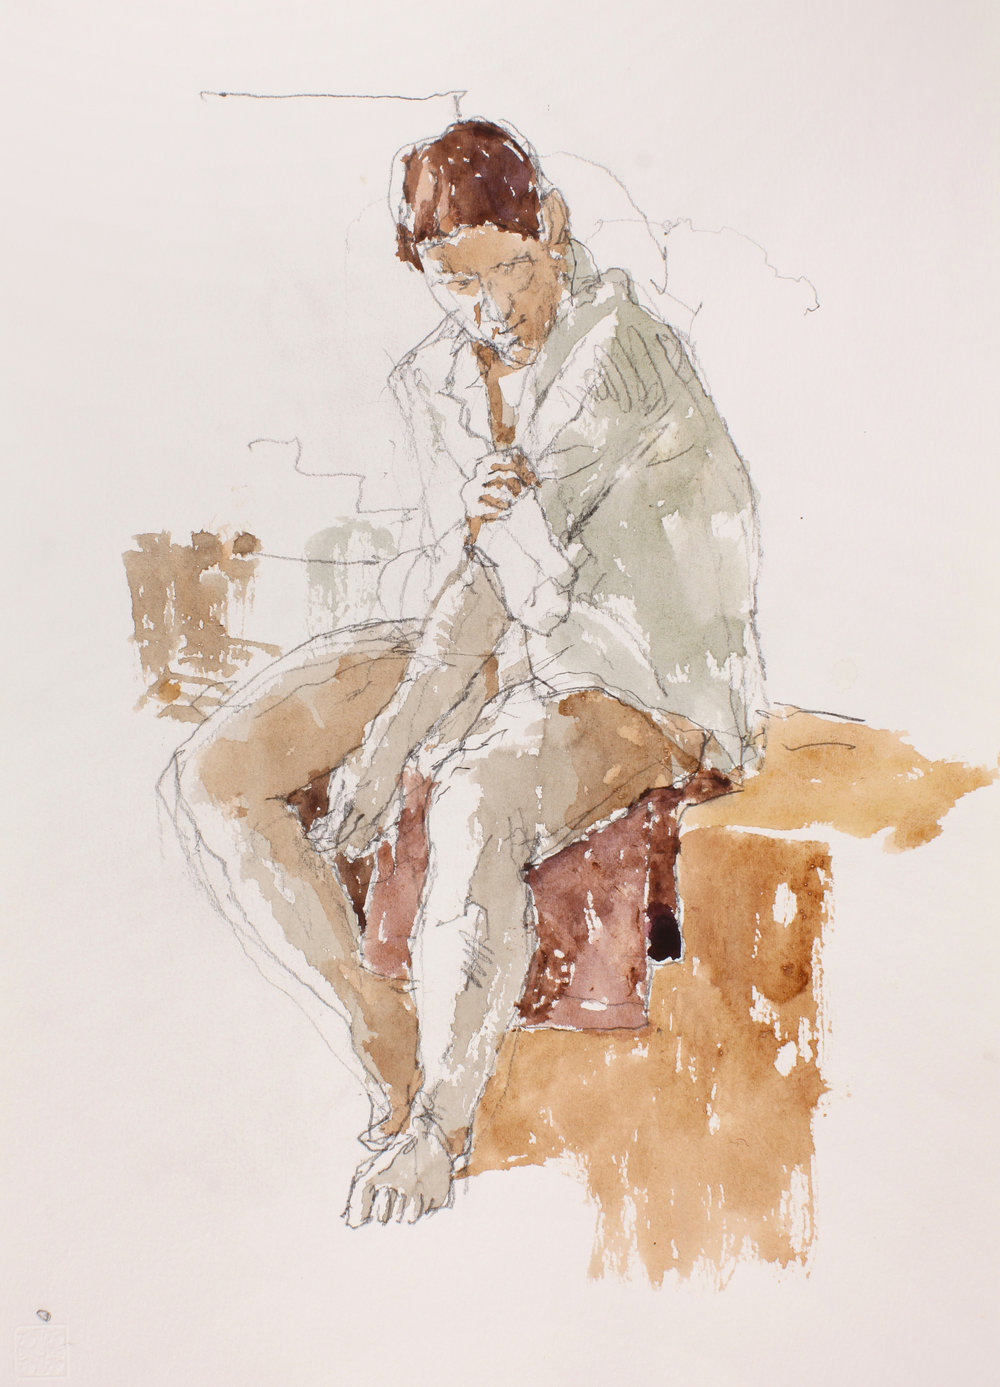 2007_Figure_Adjusting_Sleeve_watercolour_and_pencil_on_paper_15x11in_WPF114.jpg